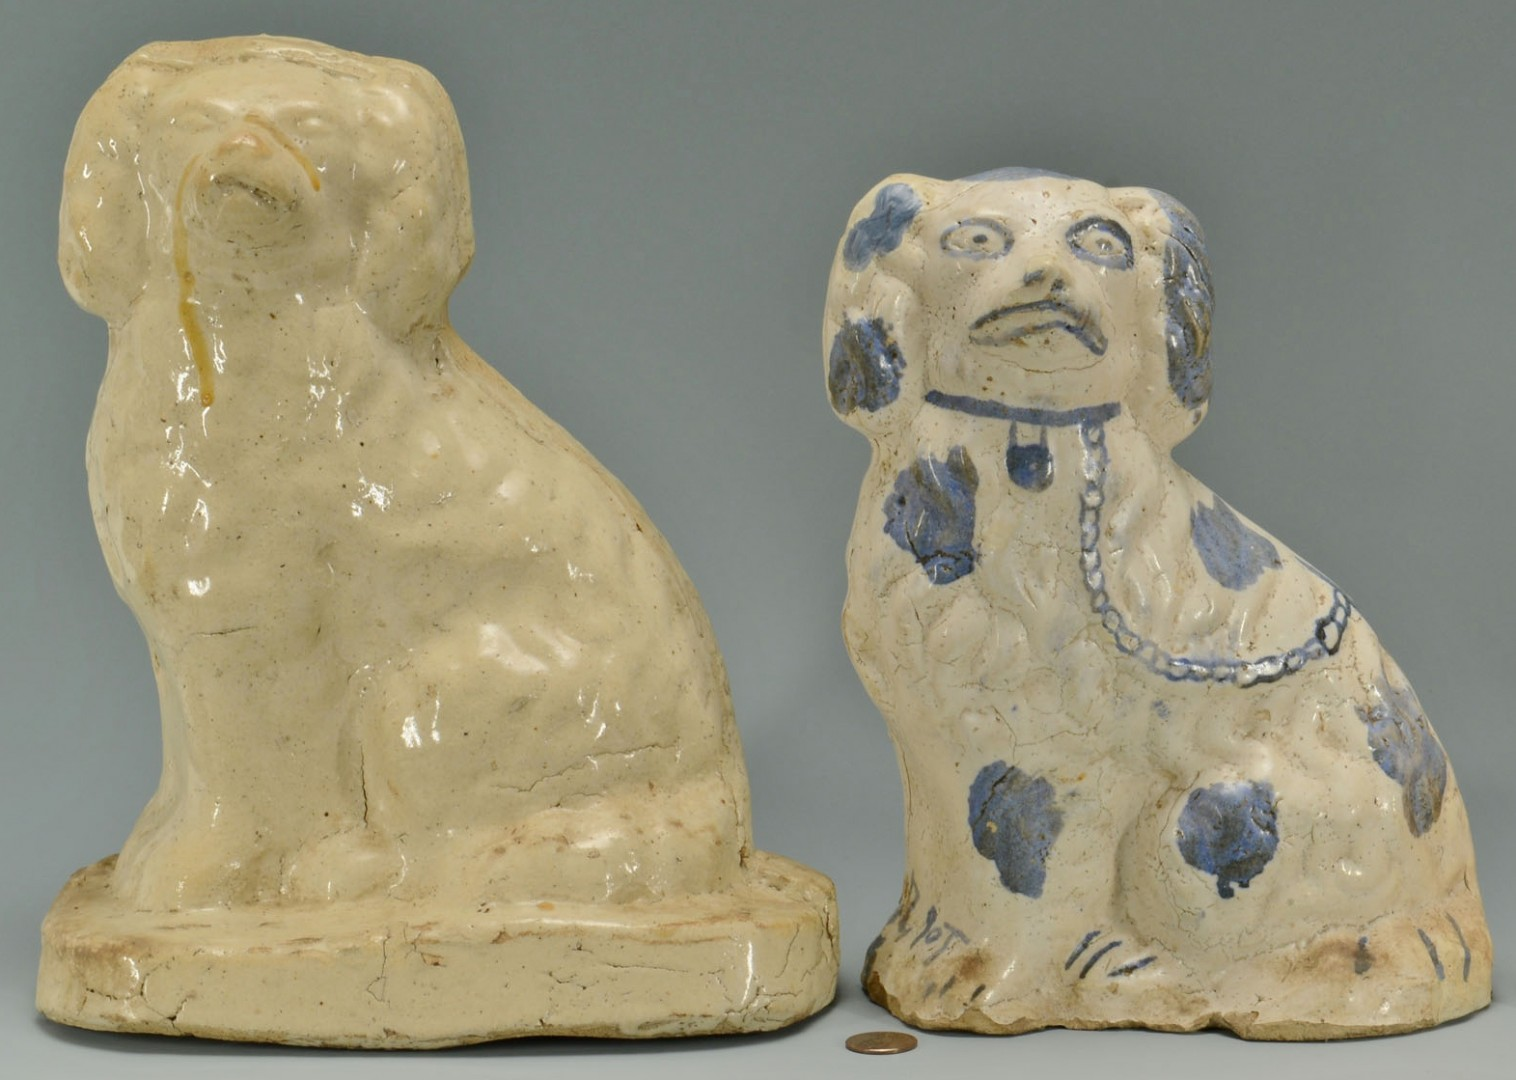 Lot 61: Grouping of 4 Sewer Tile Spaniel Dogs